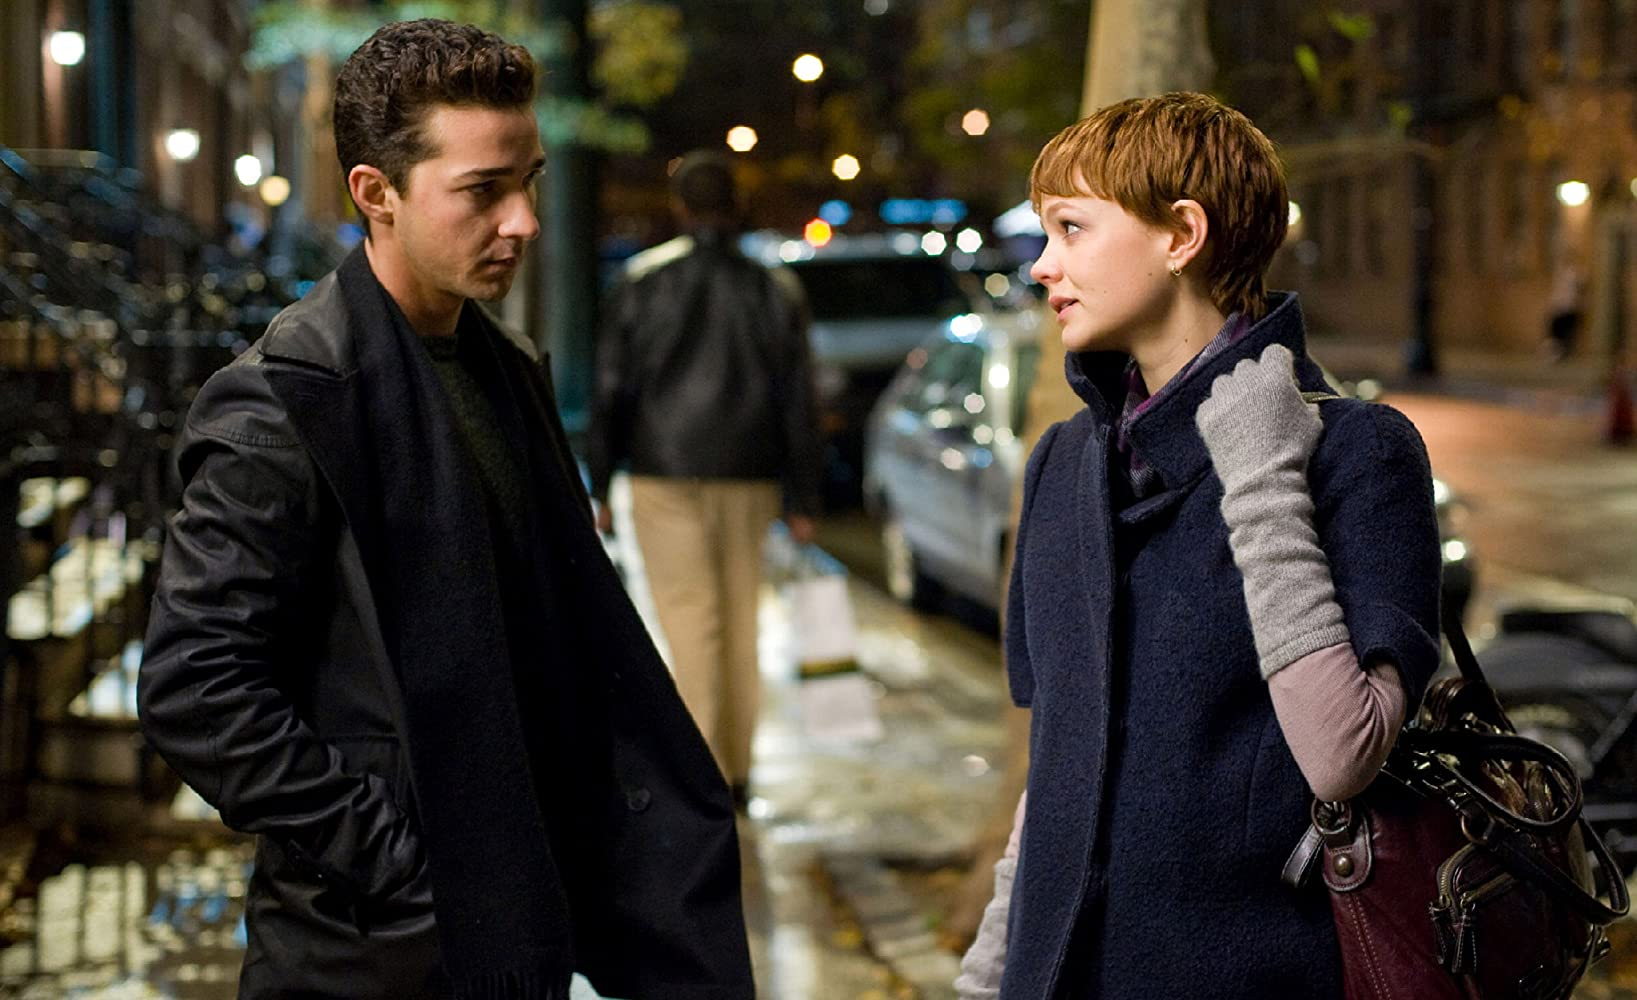 Shia LaBeouf and Carey Mulligan in Wall Street: Money Never Sleeps (2010)